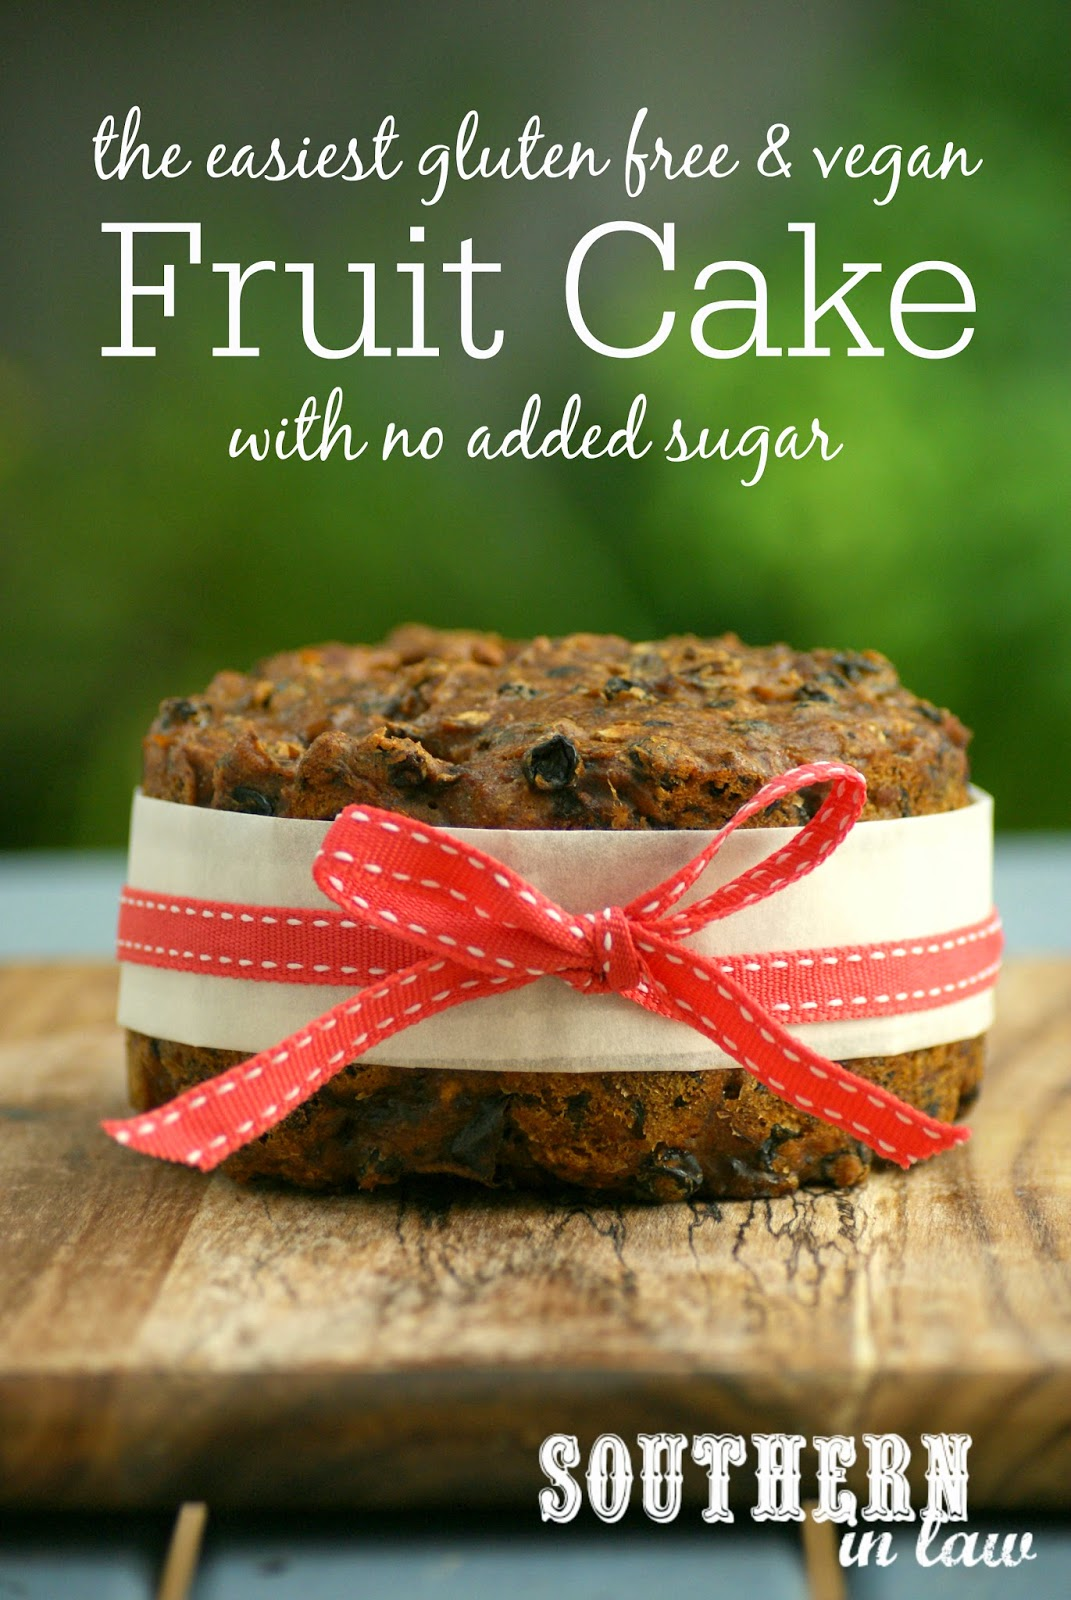 The Easiest Gluten Free & Vegan Fruit Cake Recipe with No Added Sugar - low fat, gluten free, vegan, refined sugar free, healthy, egg free, dairy free